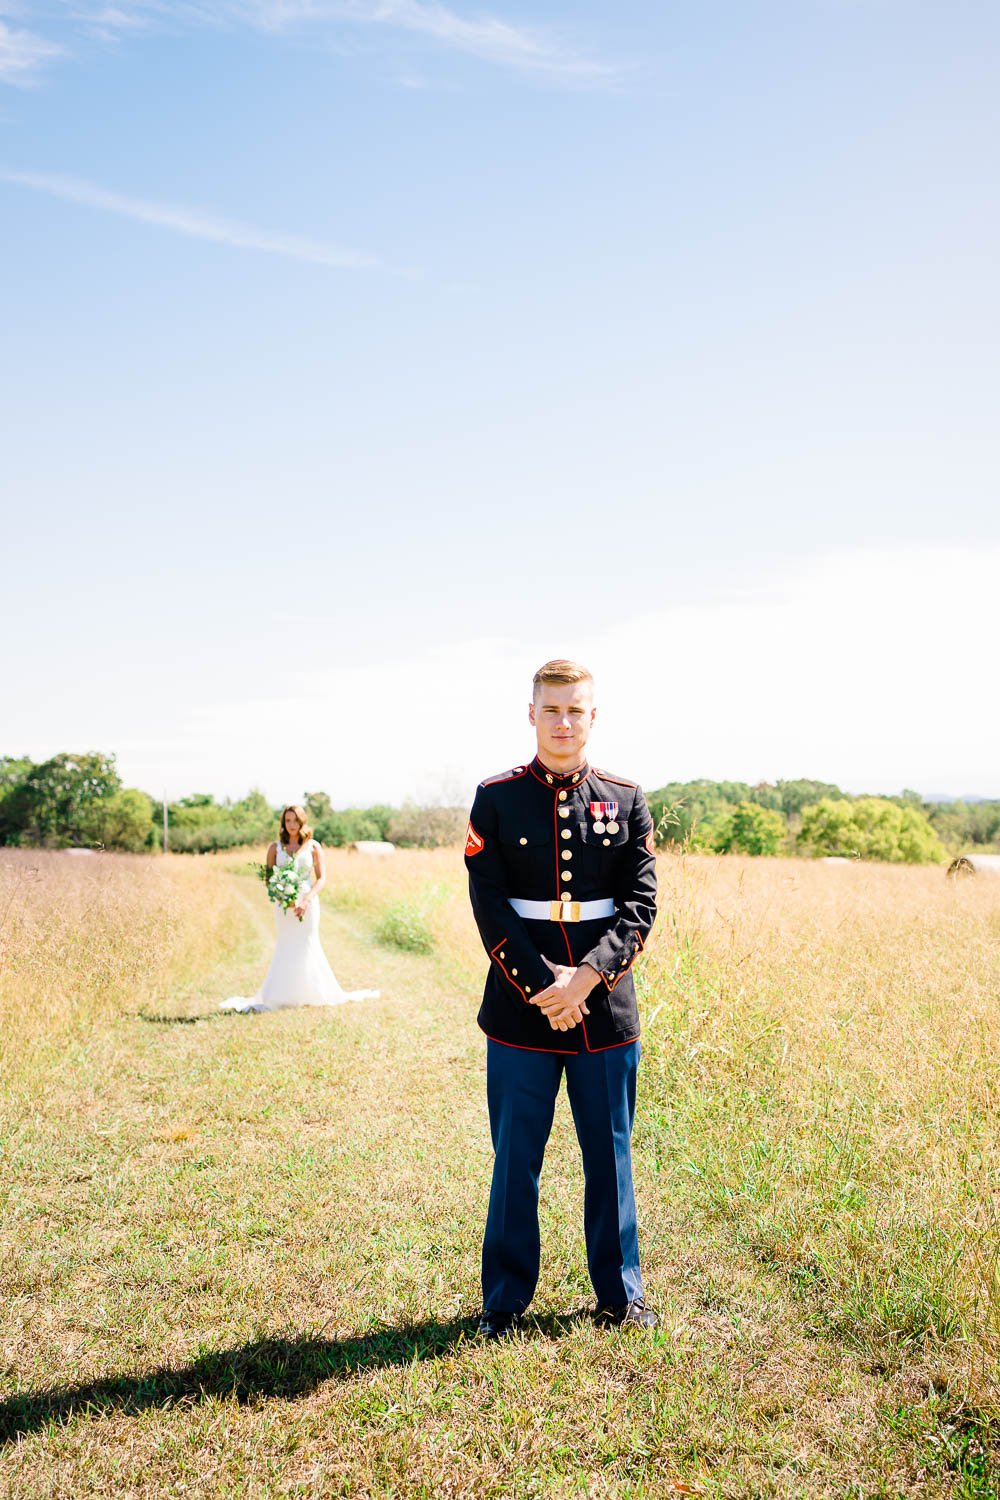 guy in marines uniform with bride to be in the background